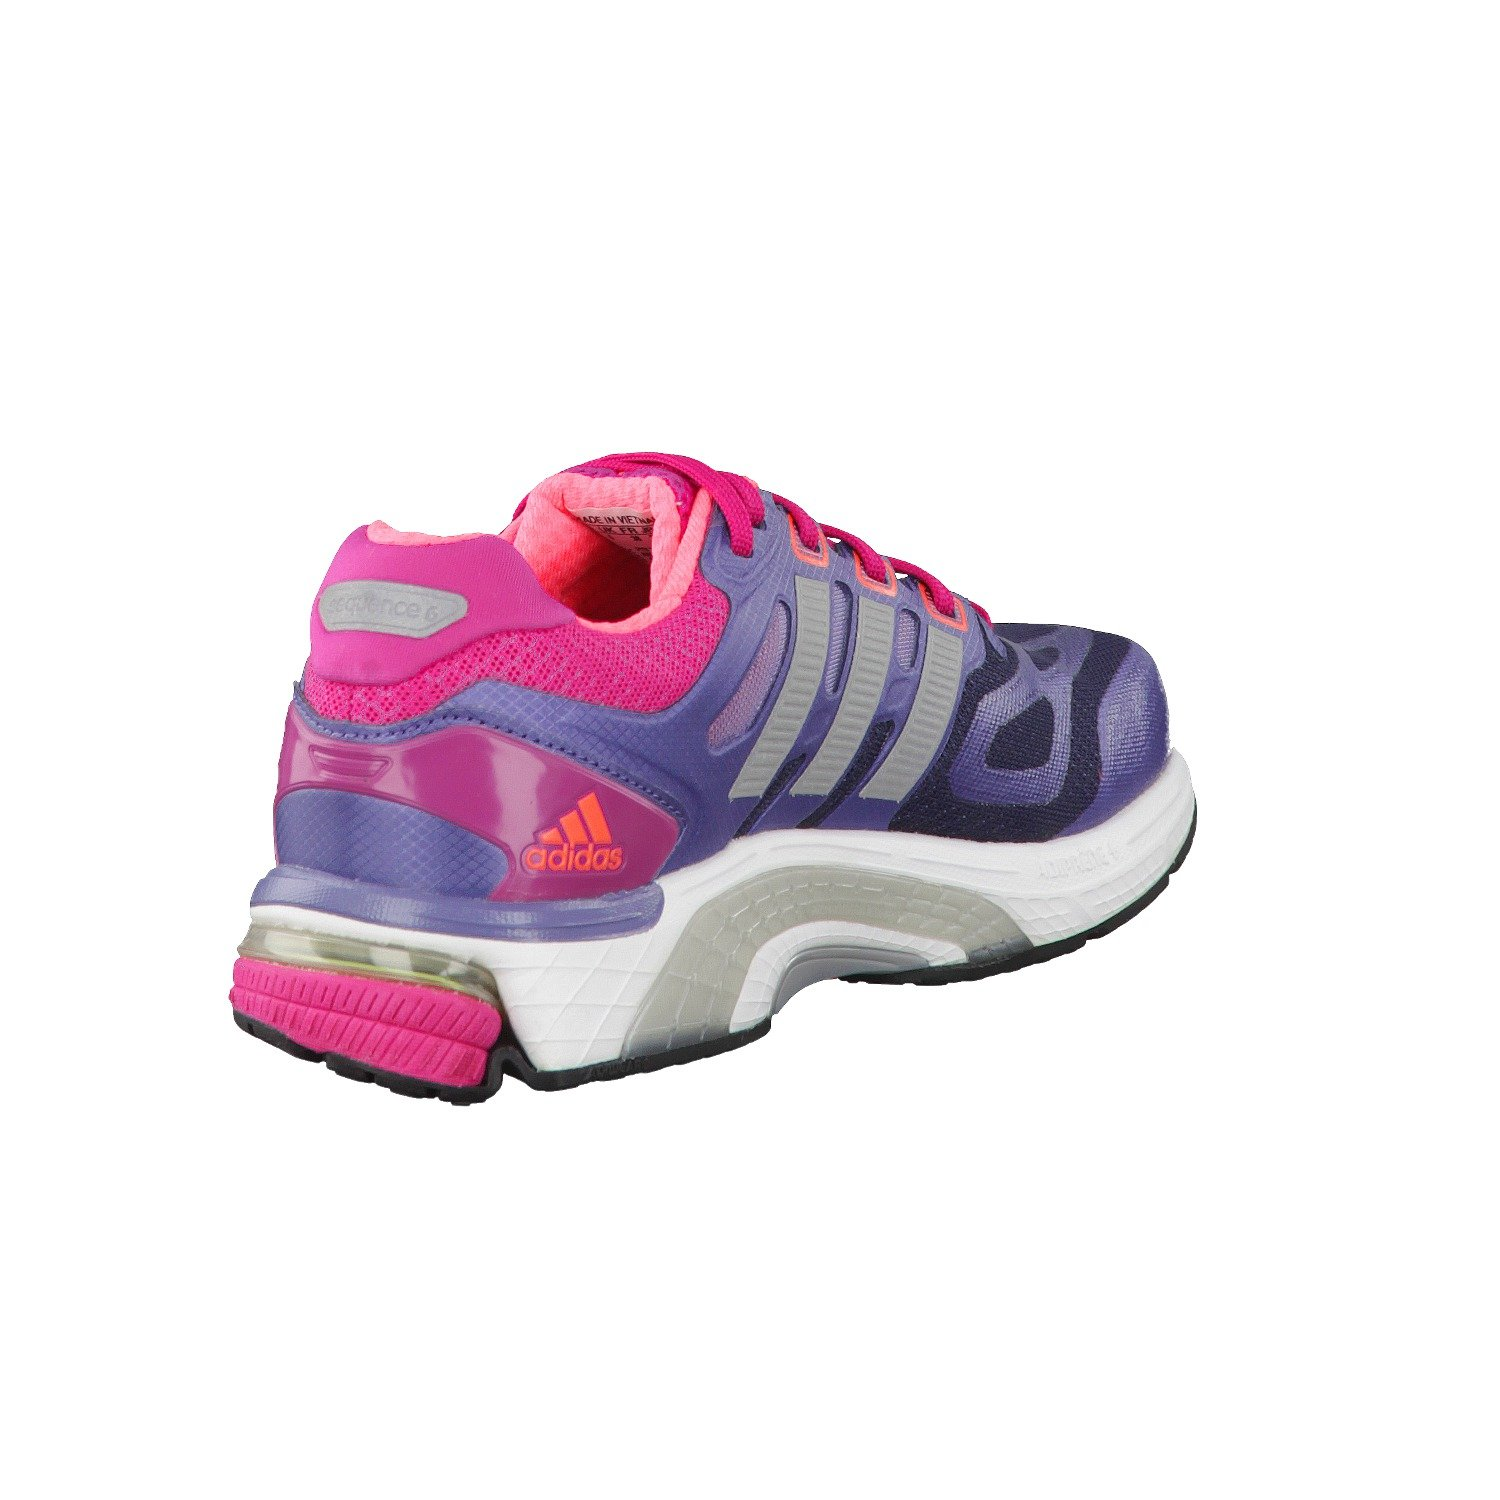 307bd8d2c adidas Women s Supernova Sequence 6 W Textile Running Shoes  Amazon.co.uk   Shoes   Bags